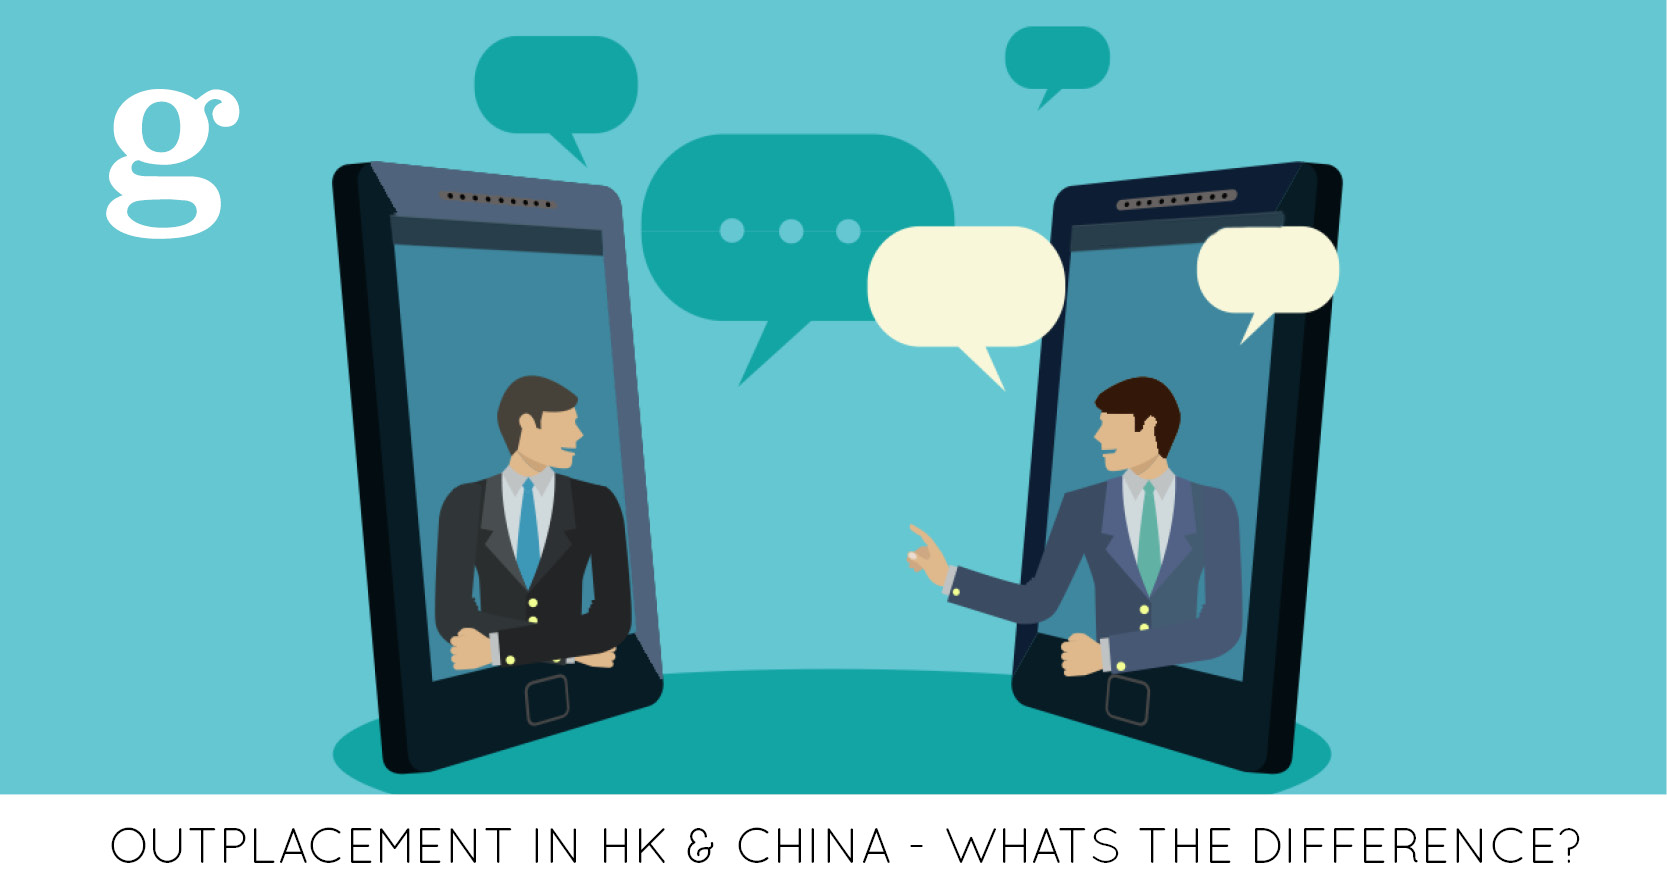 Outplacement in Hong Kong and China - What's the difference?